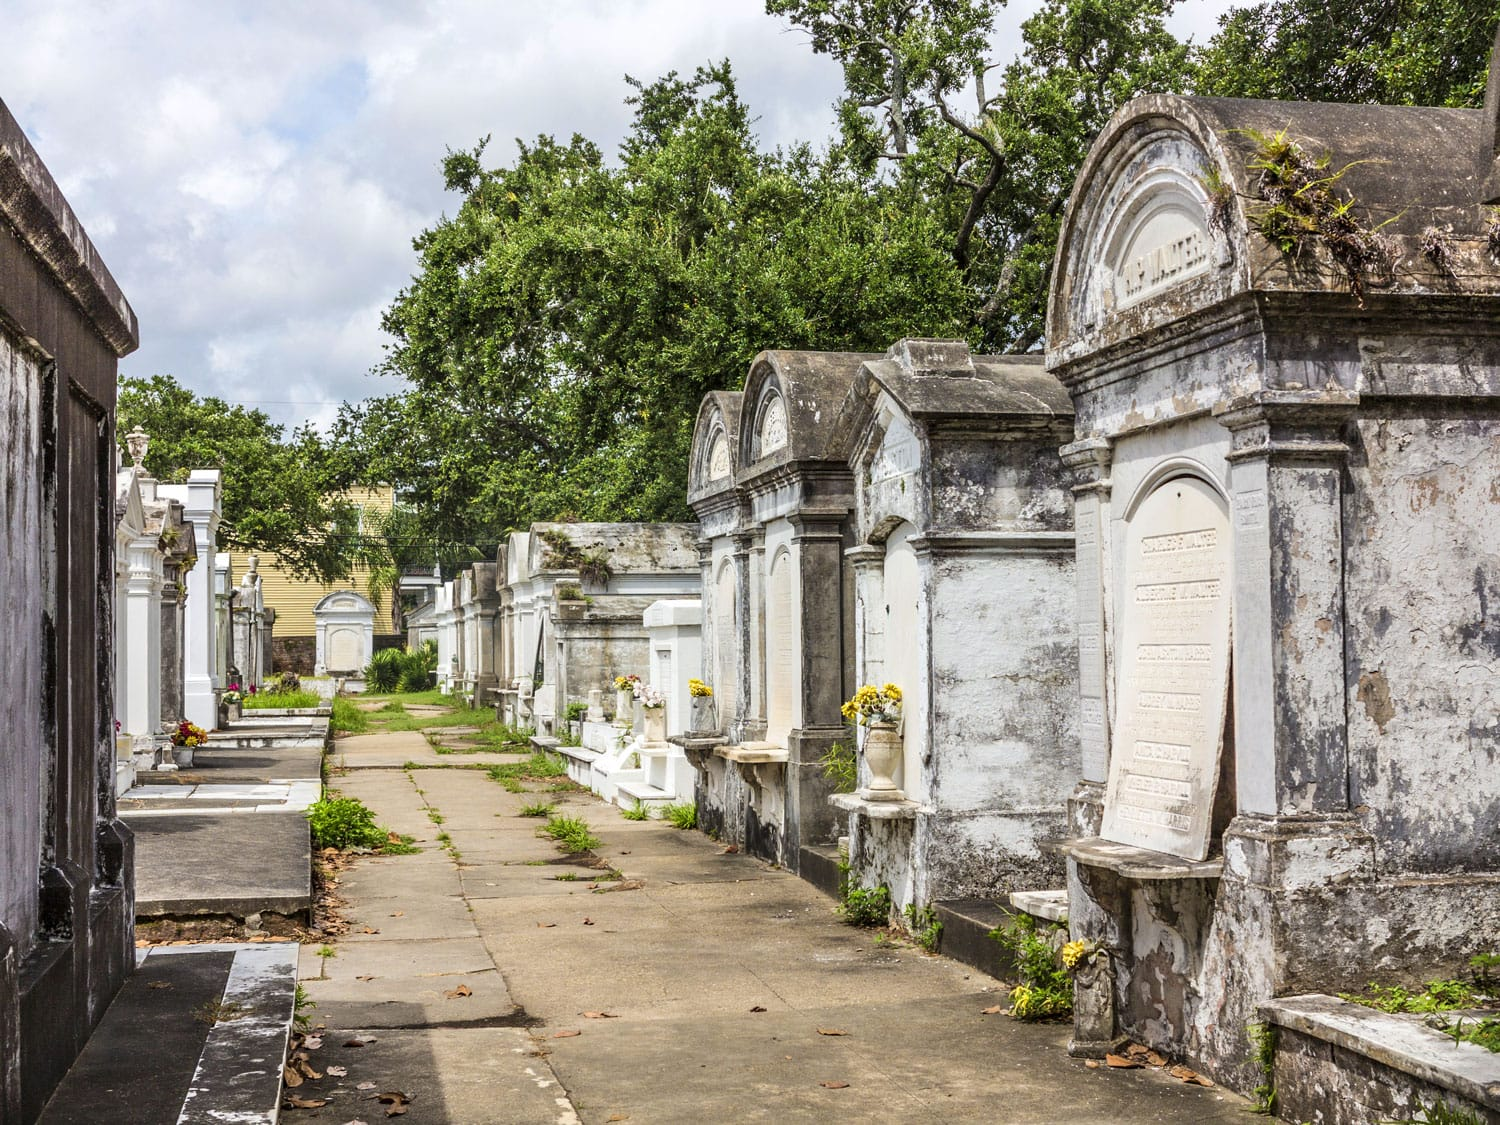 Grave site at the Saint Louis Cemetery No 1. in New Orleans